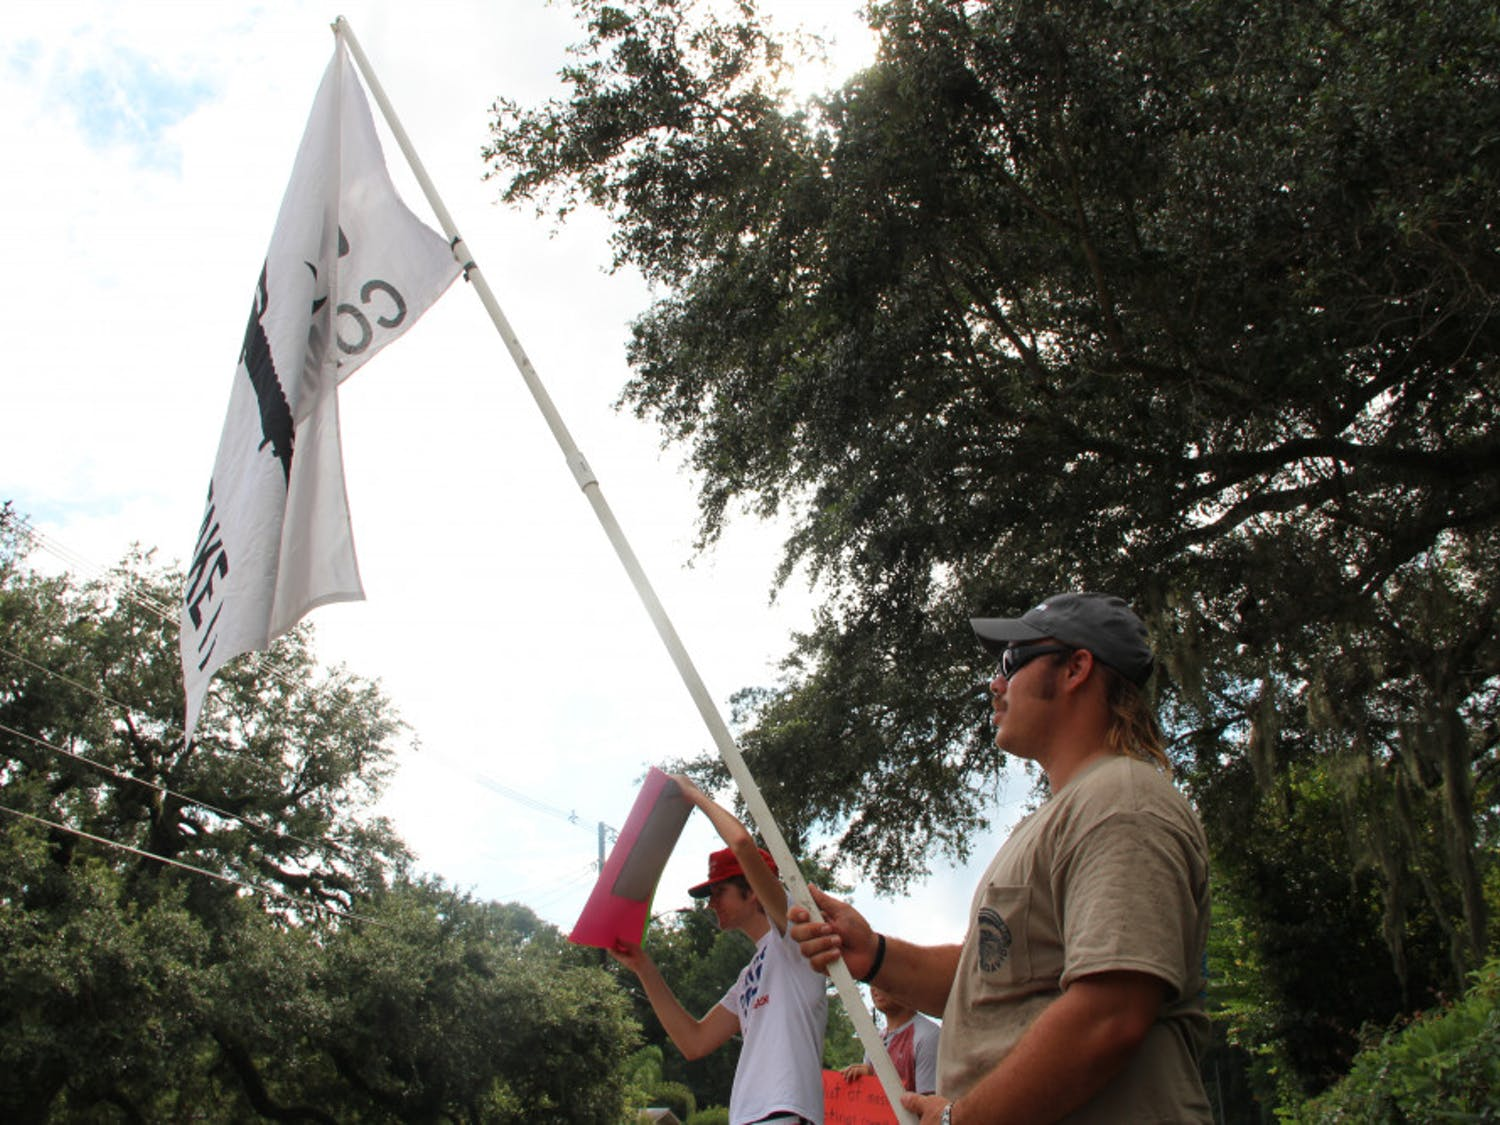 """Libertarian party member Chris Rose II (right), 29, waves flag with the words """"Come and Get It"""" printed next to a firearm with to 21-year-old Taylor Wyatt Foland (left). The two protested across the street from the Gainesville Women's Club during the March For Our Lives panel."""